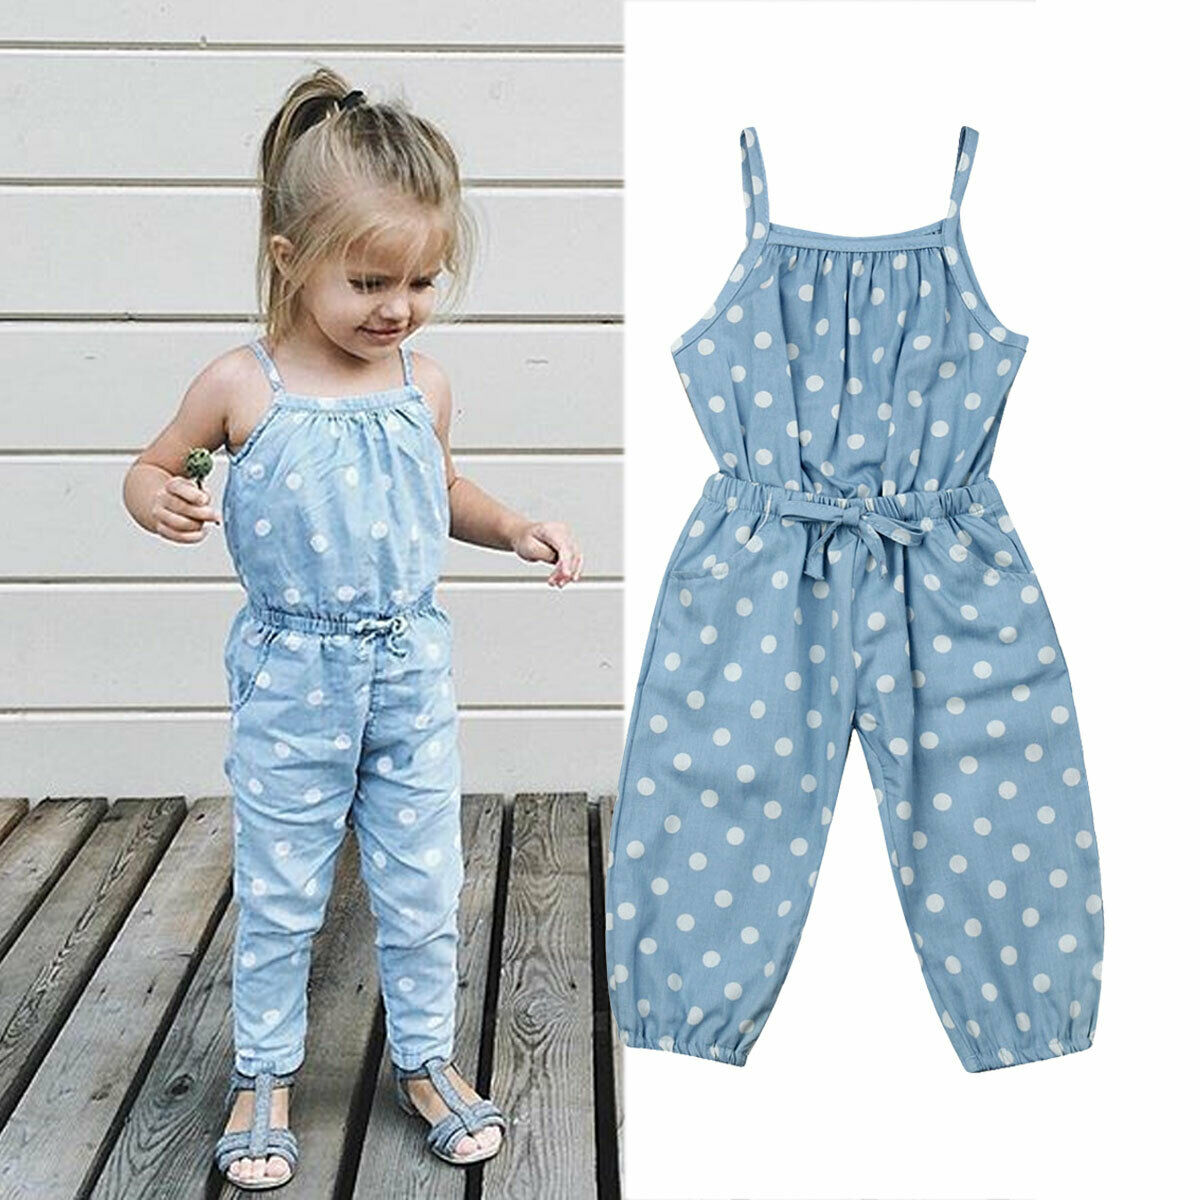 e3122afd4 1-5Y Cute Infants Baby Girl Romper Sleeveless Blue Wave Point Bib Pants  Trousers Summer Clothes Top ~ Perfect Deal June 2019